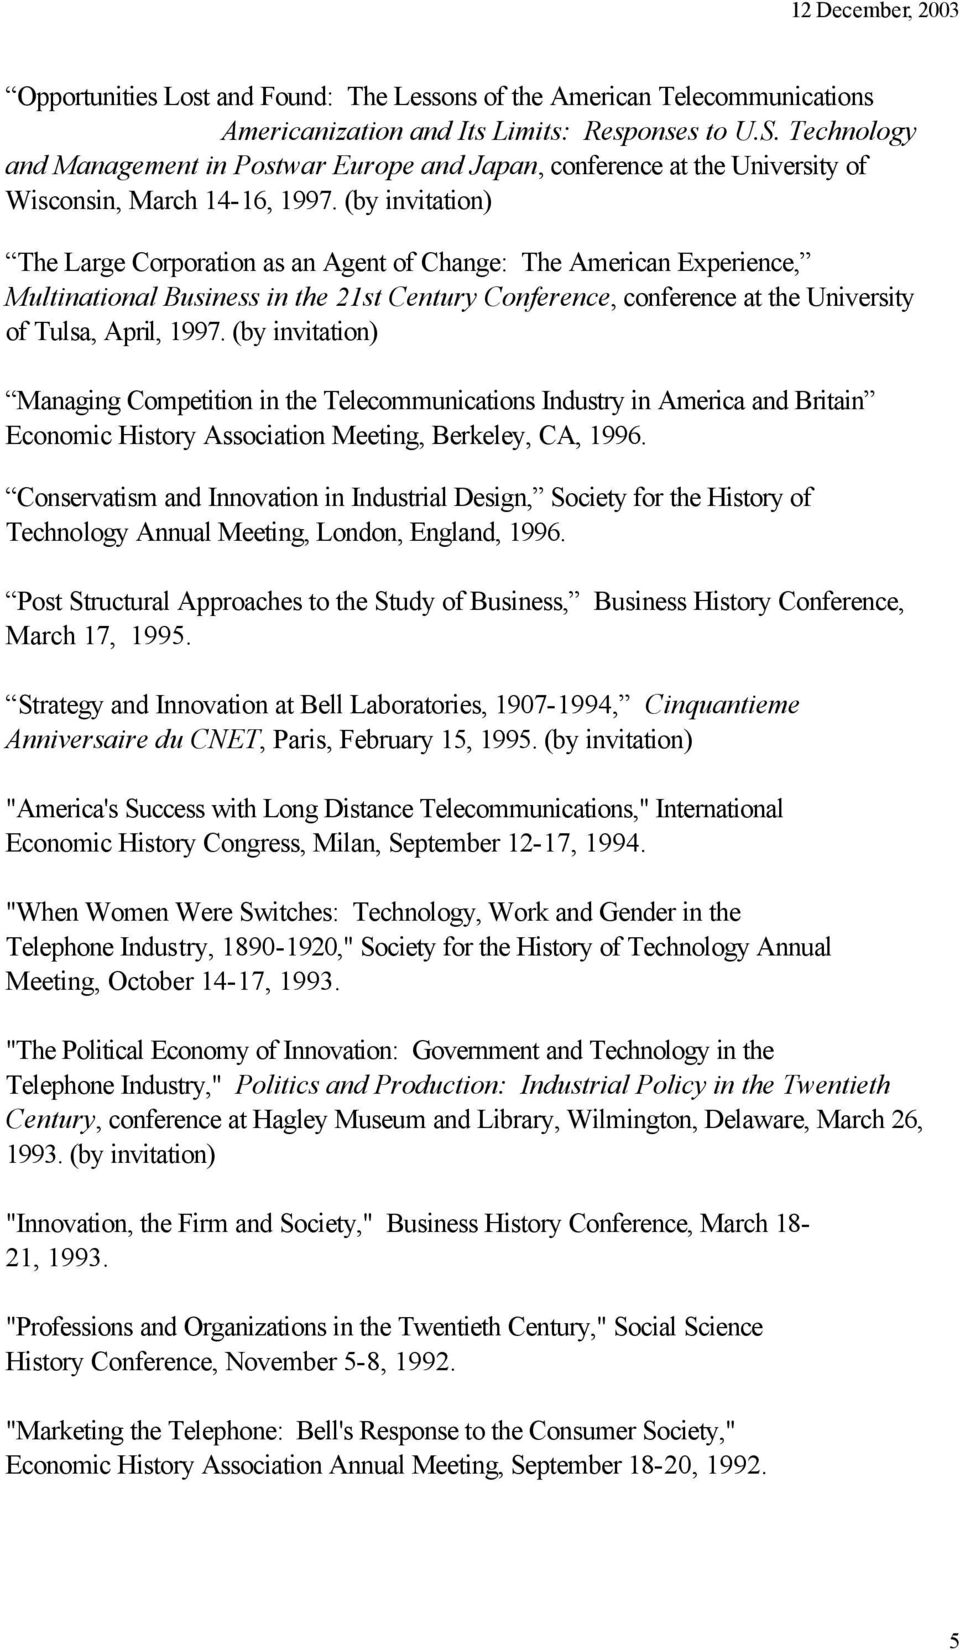 (by invitation) The Large Corporation as an Agent of Change: The American Experience, Multinational Business in the 21st Century Conference, conference at the University of Tulsa, April, 1997.